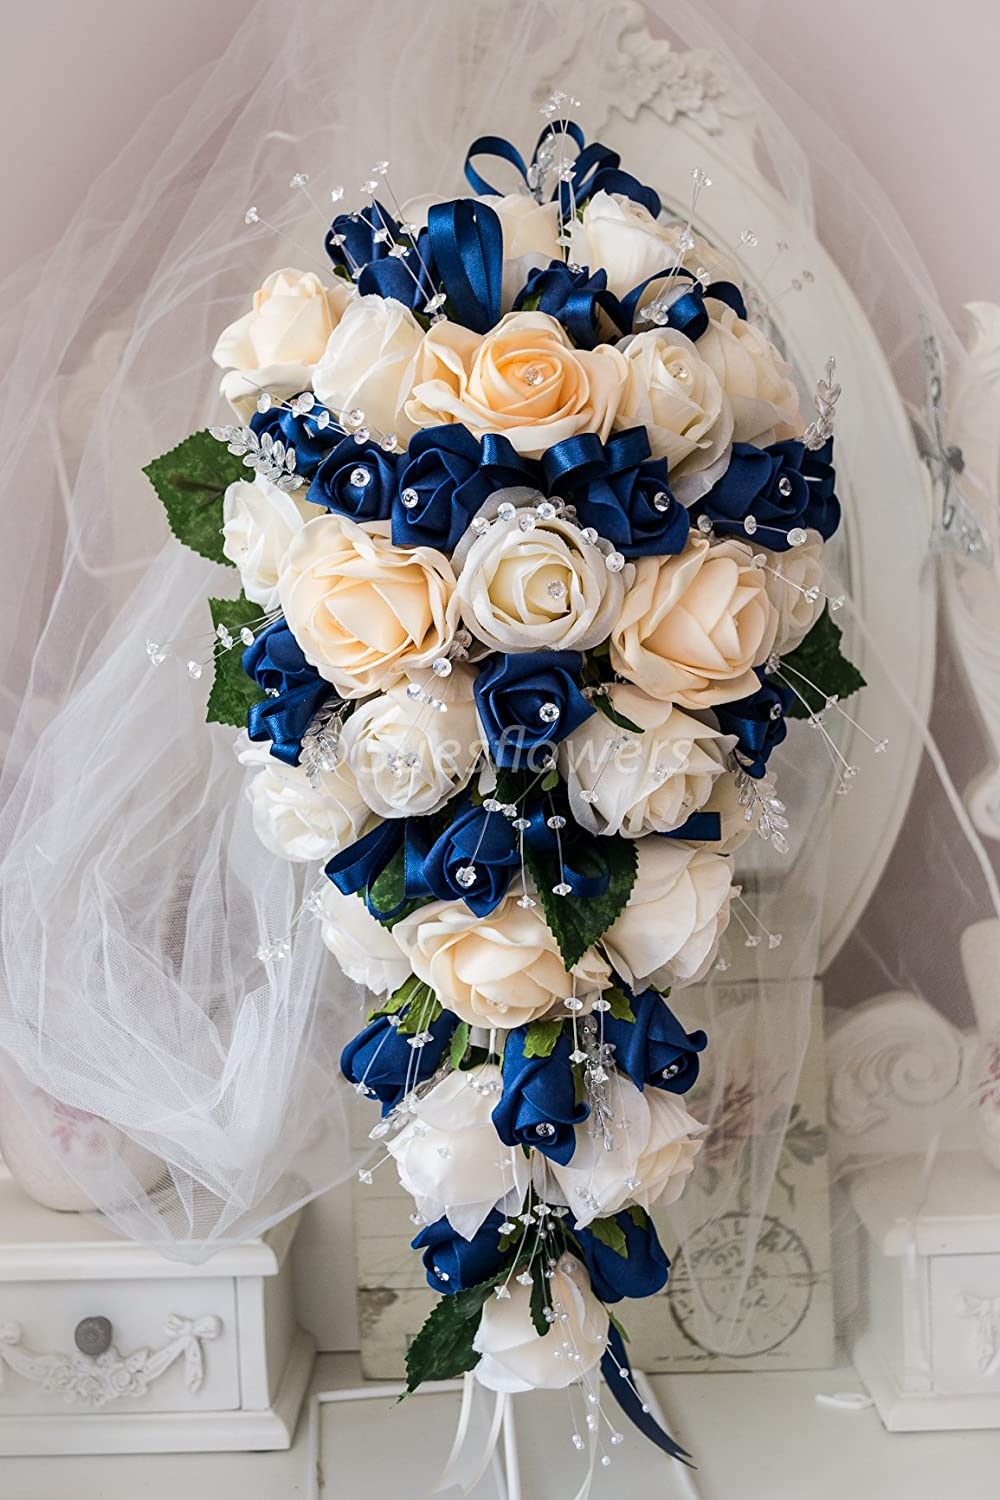 Wedding Flowers Brides Bouquet In Champagne And Navy Blue Roses